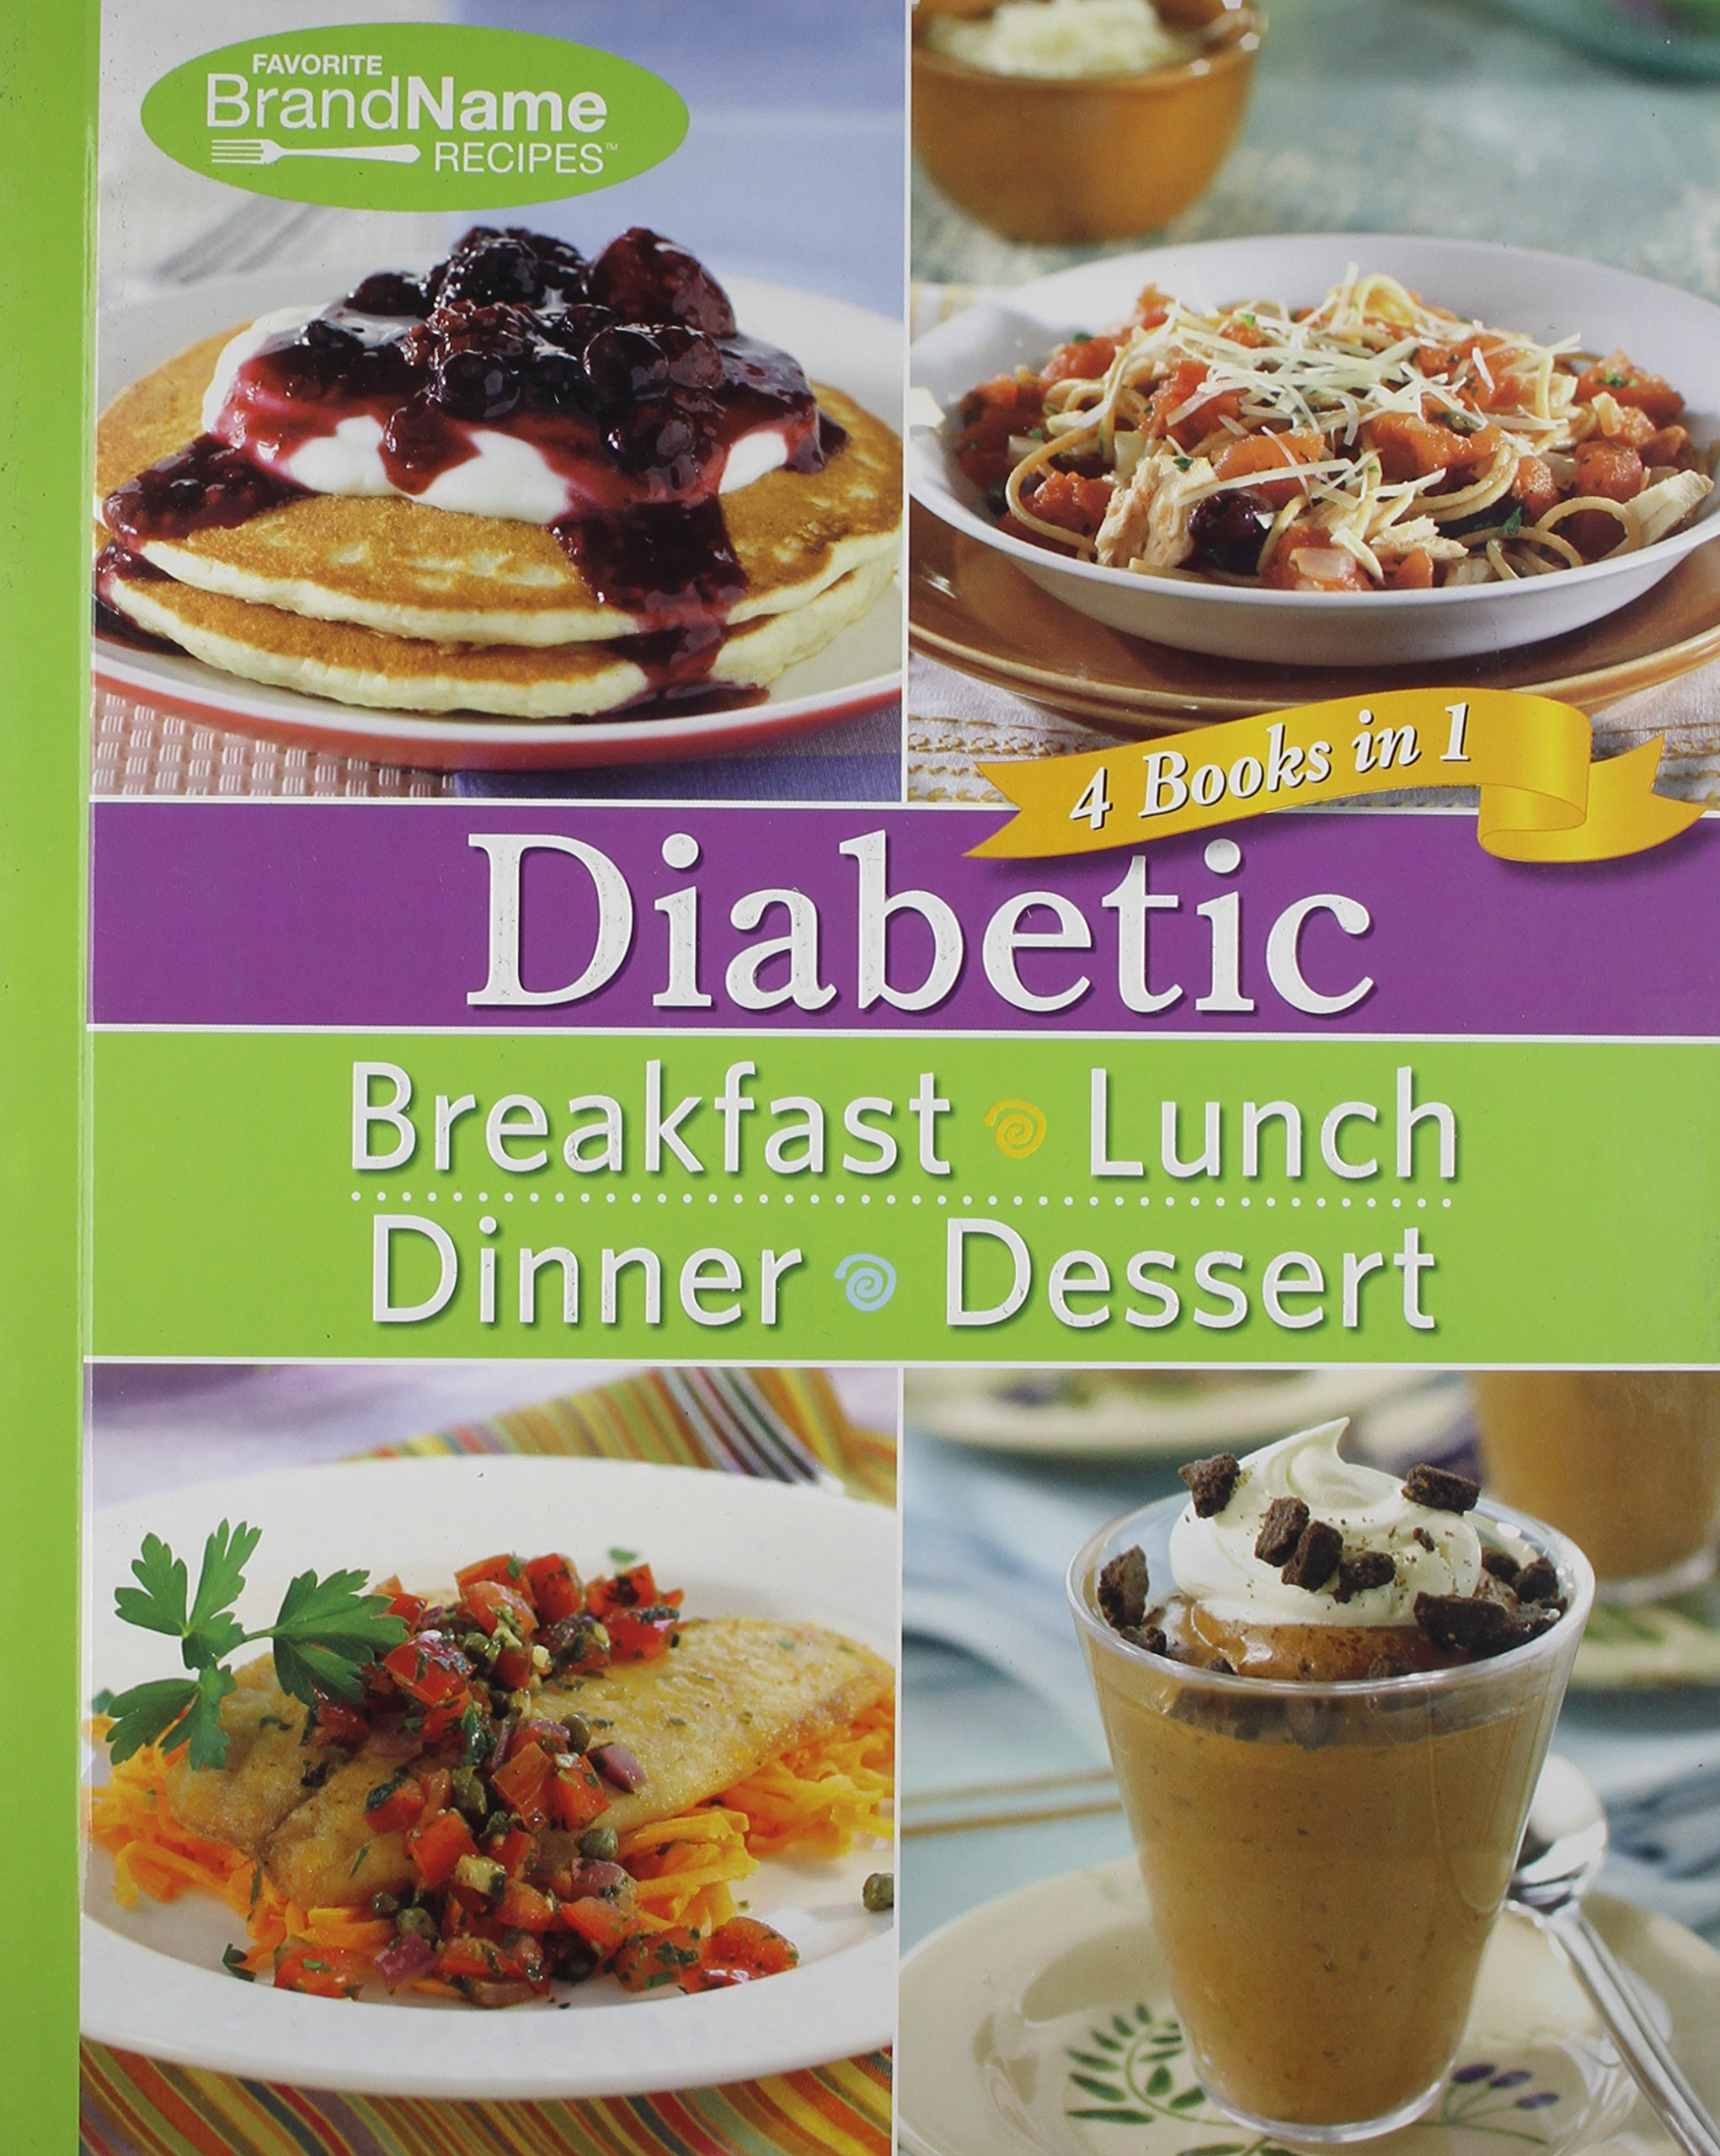 Diabetic 4 books in 1 breakfast lunch dinner desserts diabetic 4 books in 1 breakfast lunch dinner desserts editors of favorite brand name recipes editors of publications international ltd forumfinder Image collections